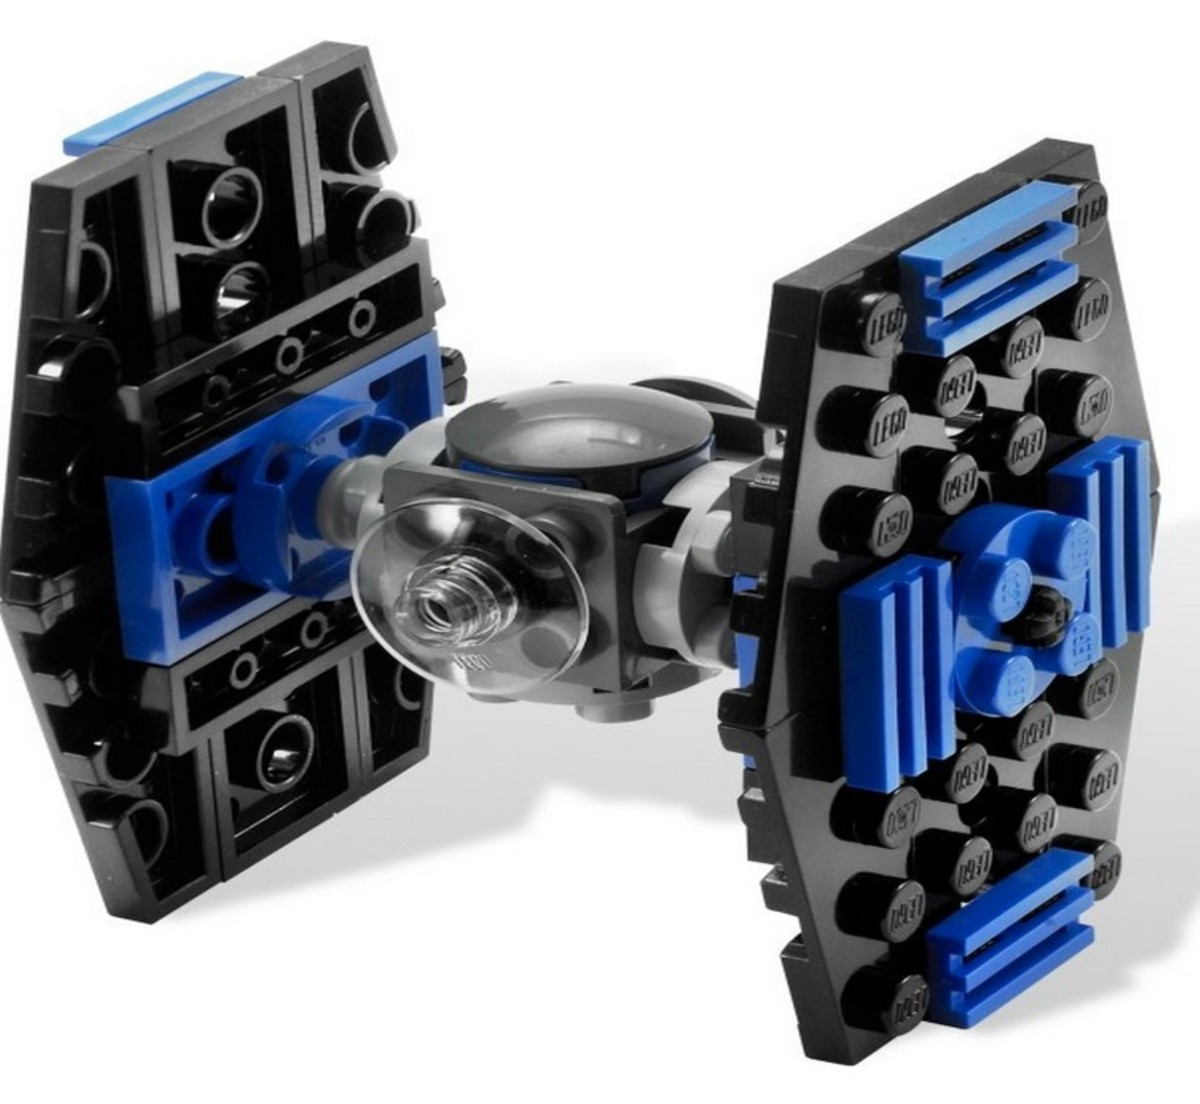 LEGO Tie Fighter 8028 Assembled